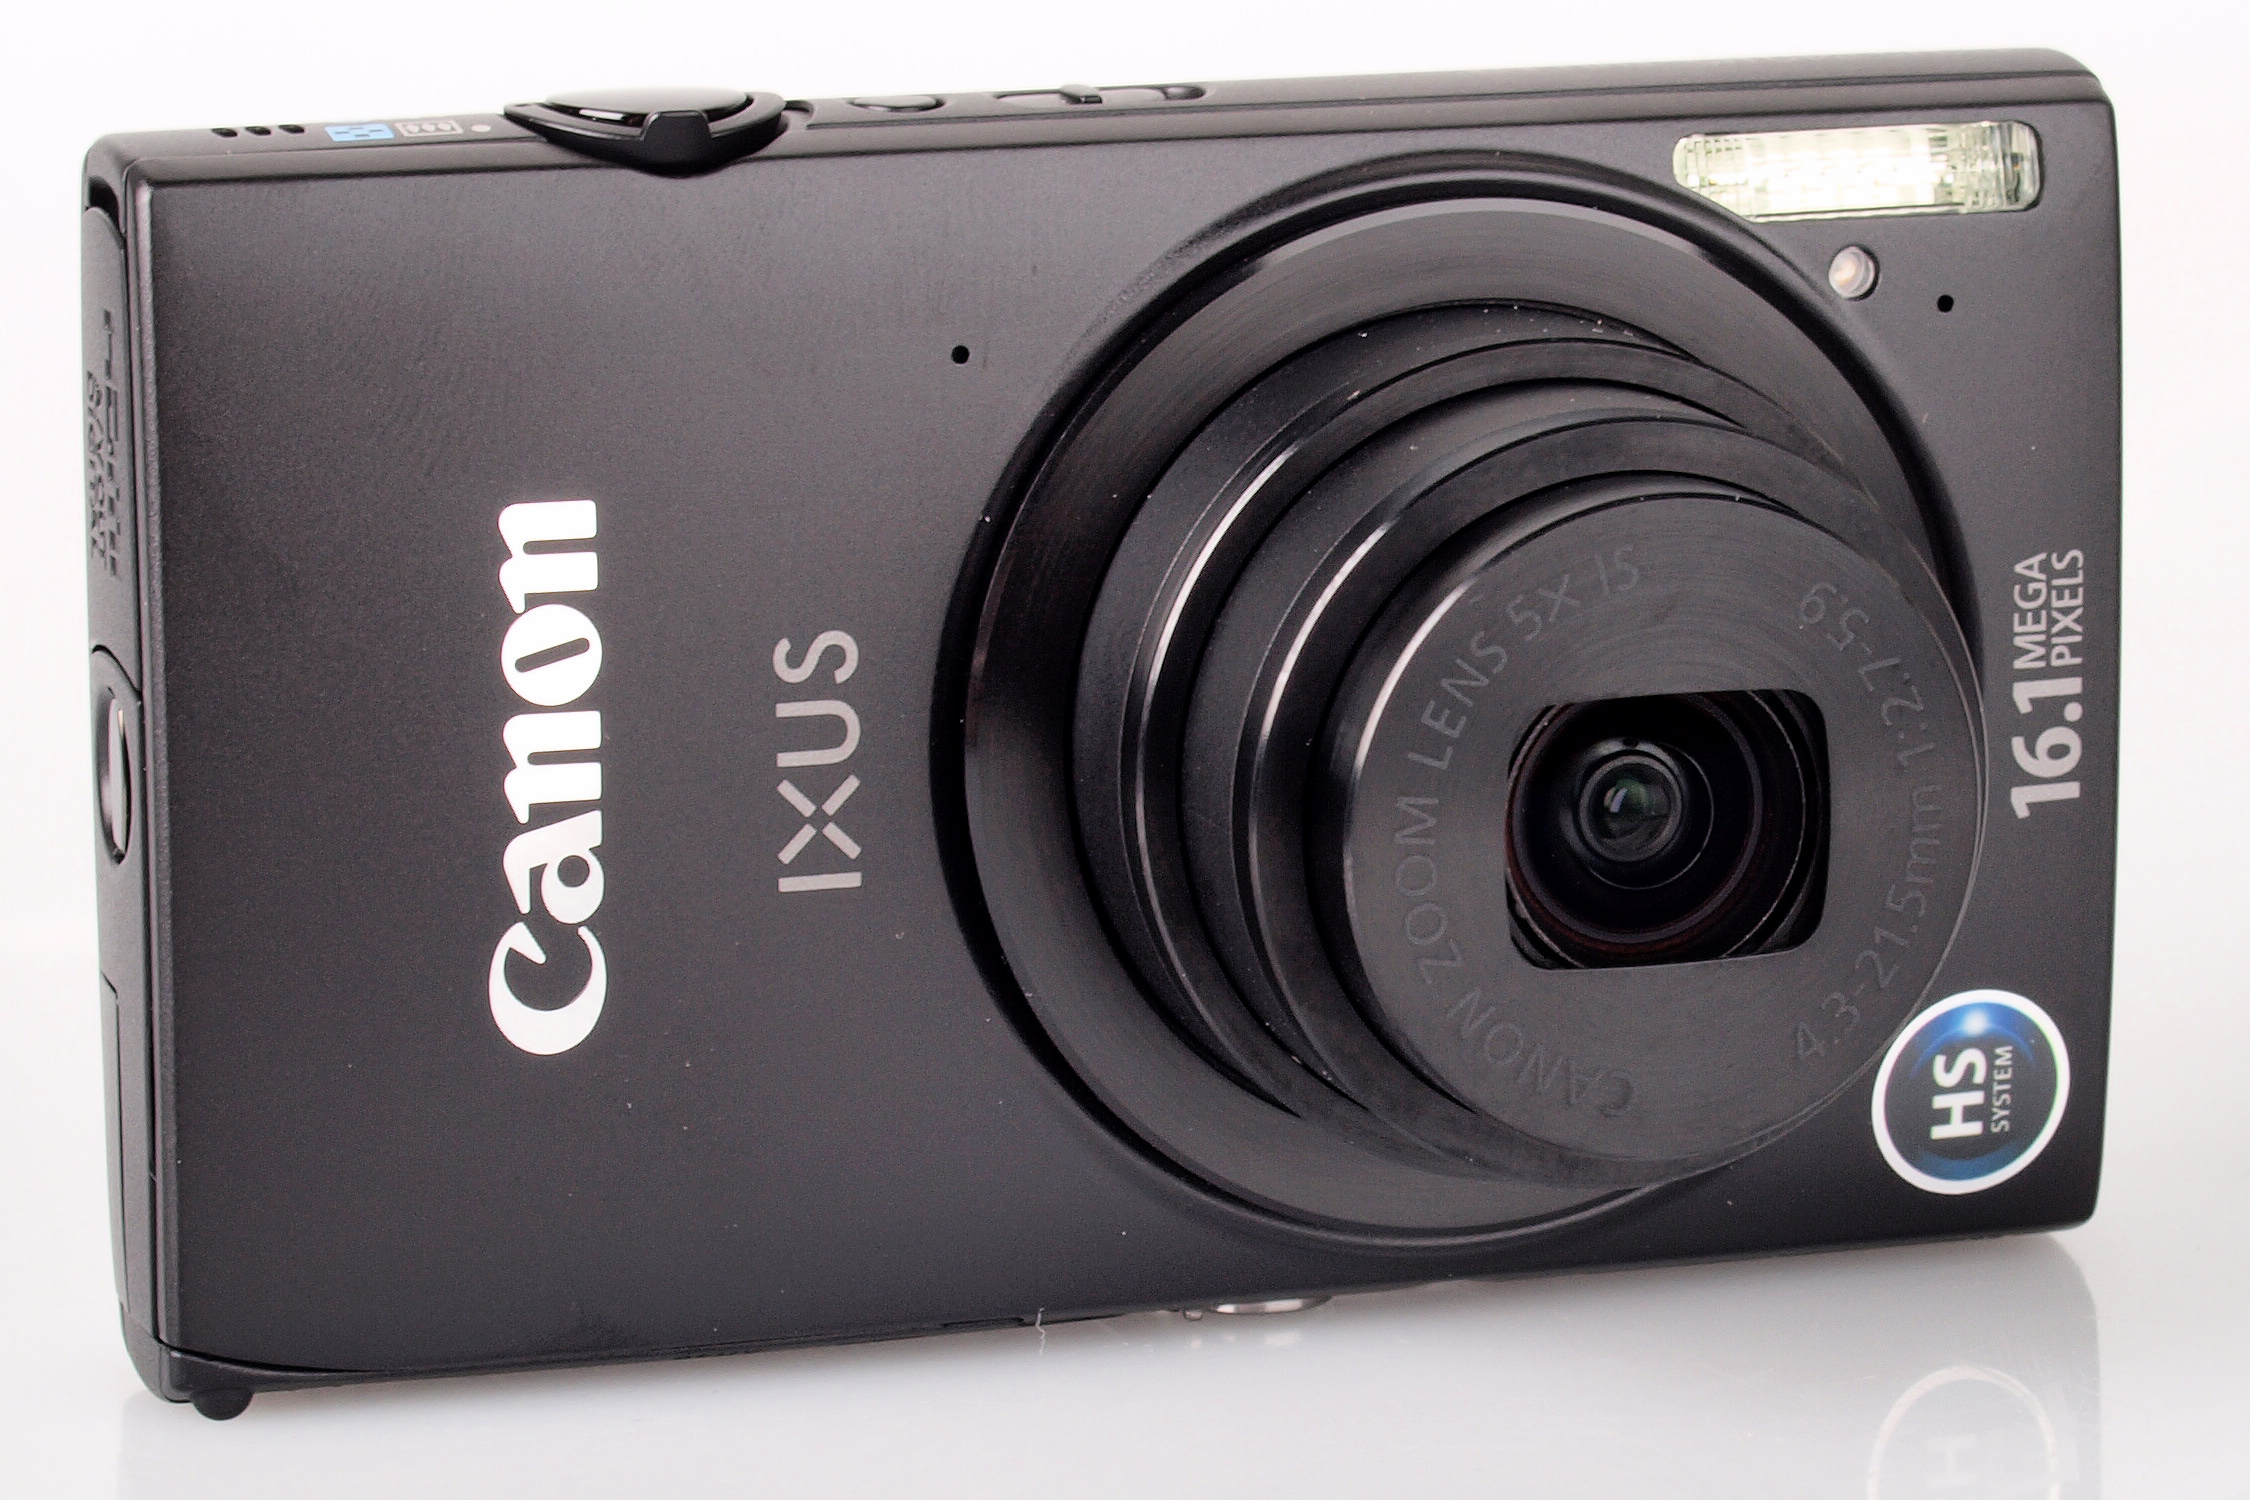 Canon IXUS 240 HS Wi-Fi Digital Camera Review